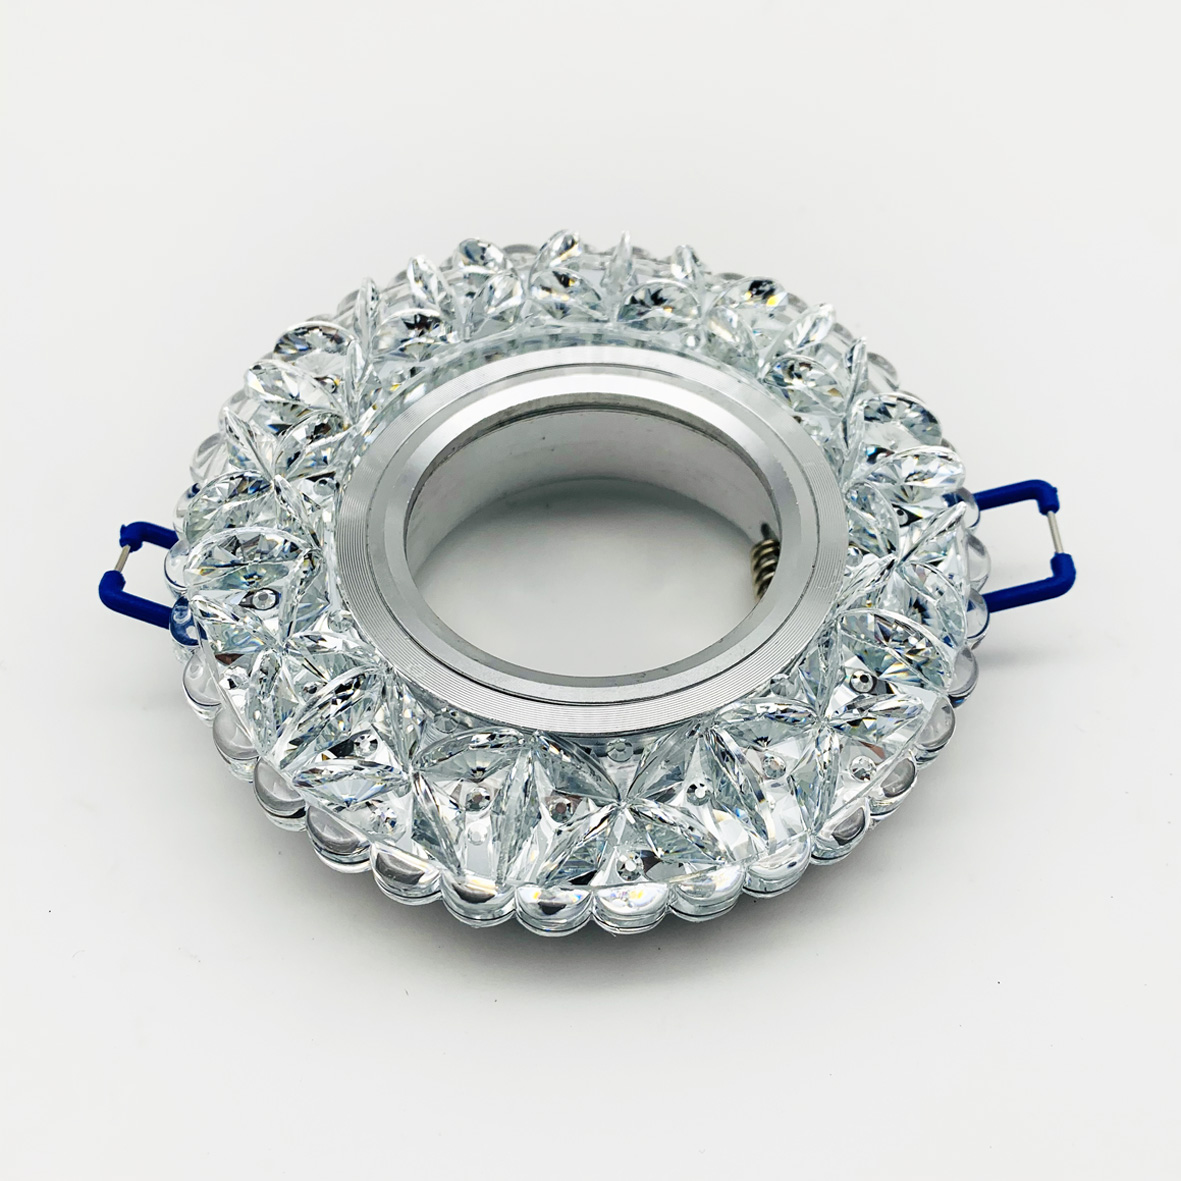 Ring spotlight GU10 for plasterboard in glass with details of diamond